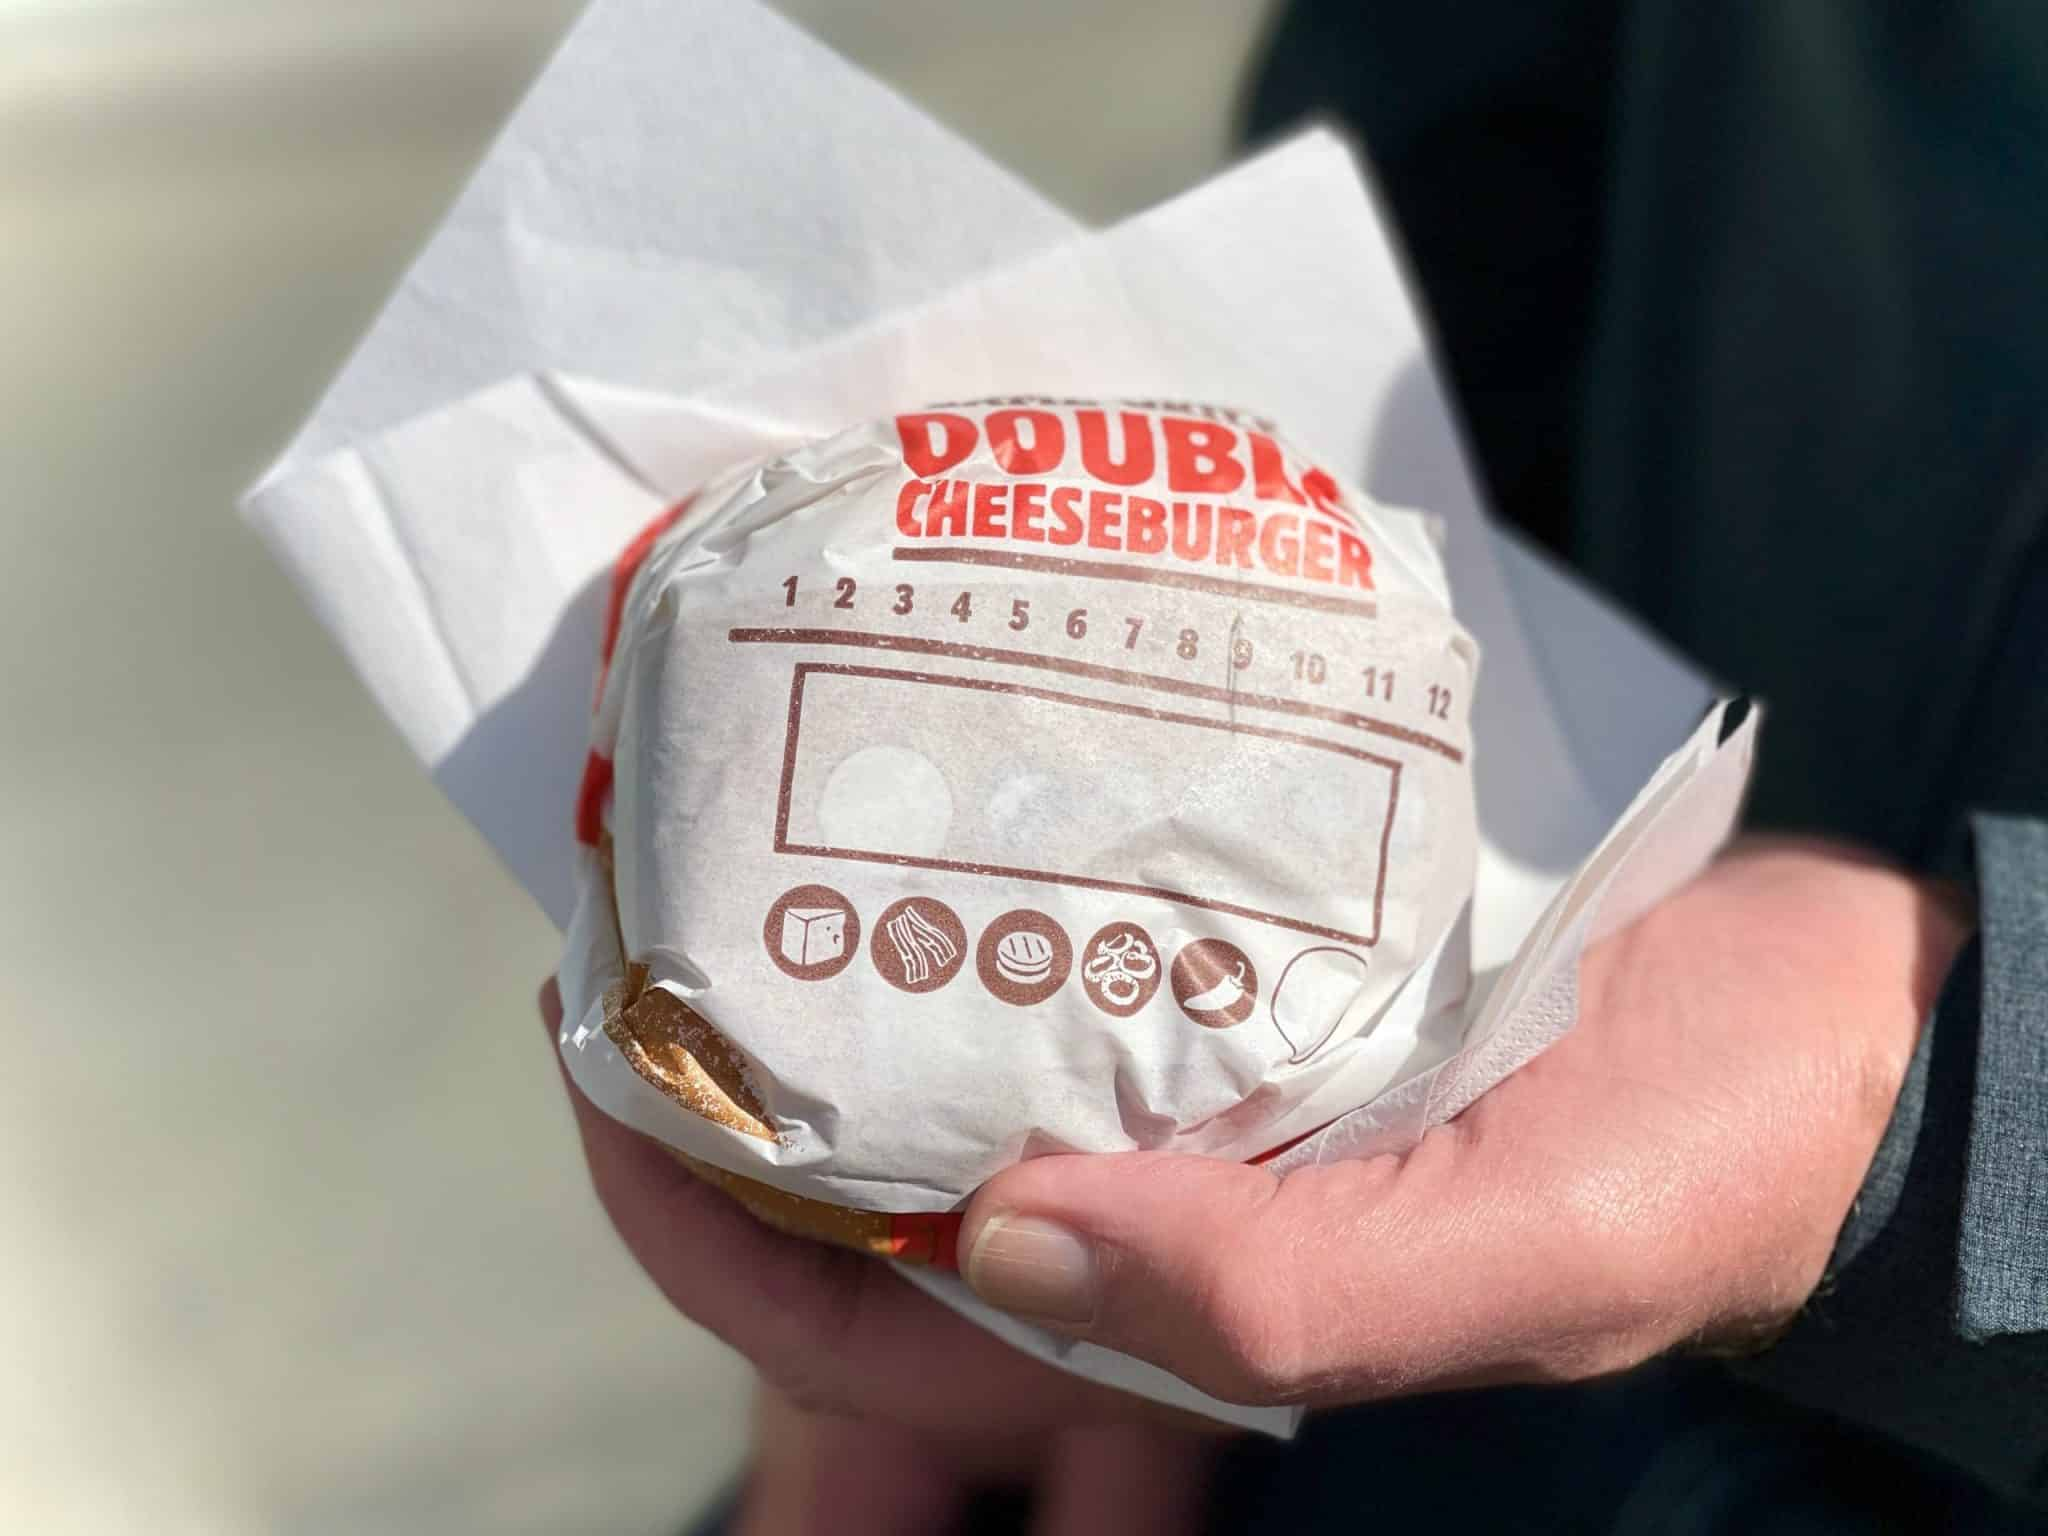 Five Guys, McDonald's, Burger King or Quick: which fast food burger chain serves the best cheeseburger here in Antwerp, Belgium? Let's find out!